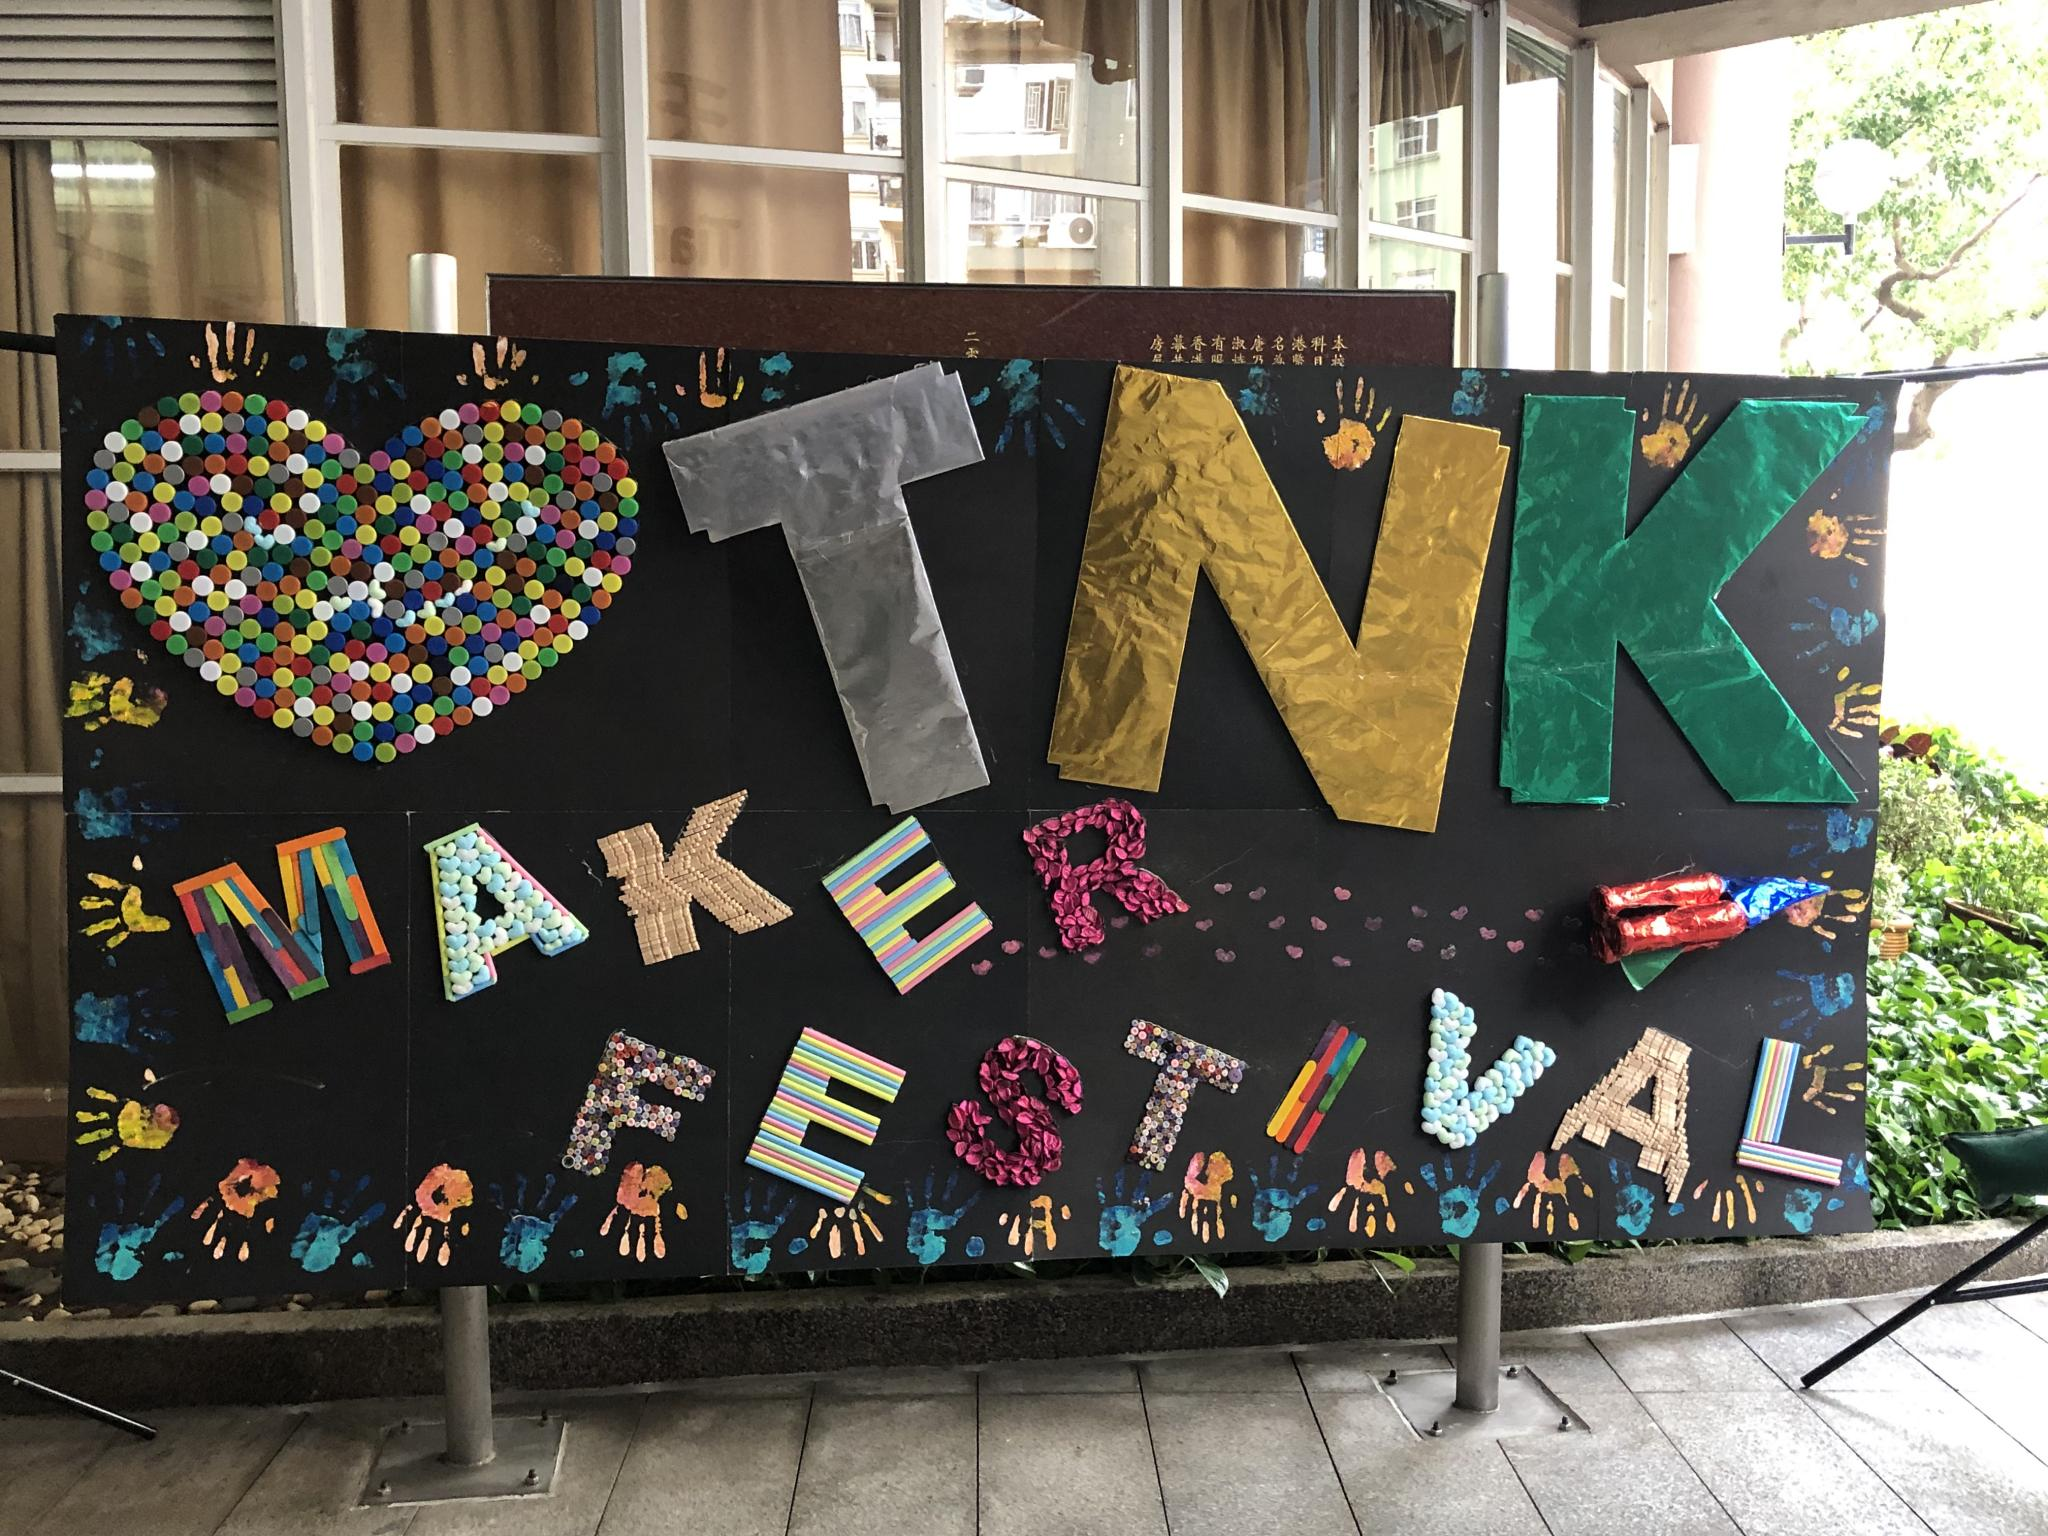 This fantastic board was made by our Student Union Committee.